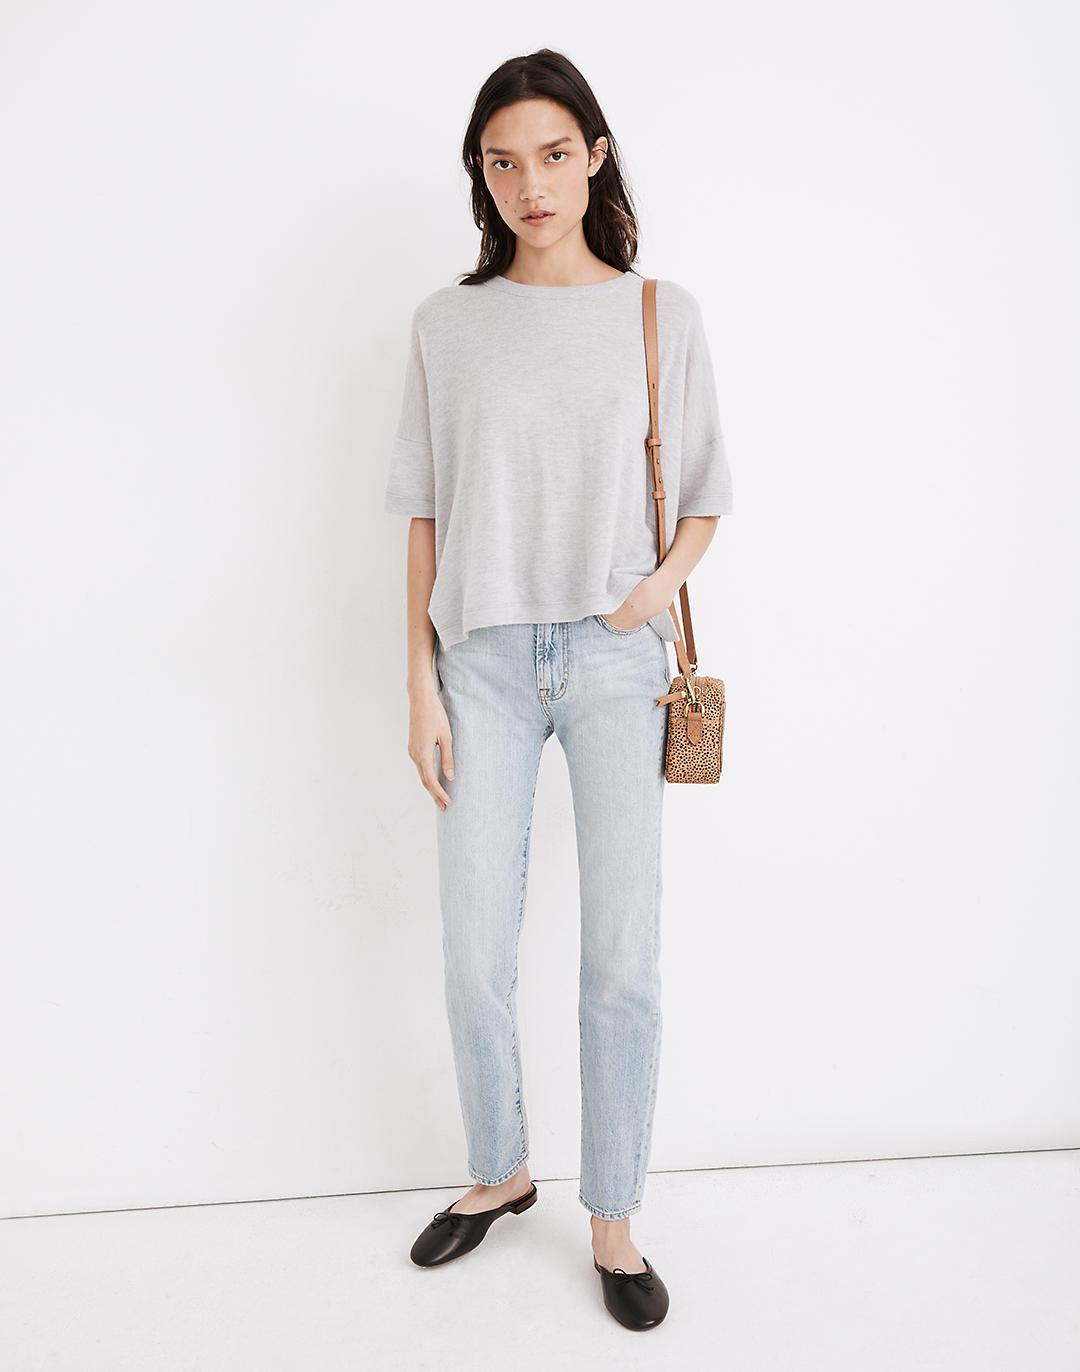 (Re)sponsible Weightless Cashmere Sweater Tee